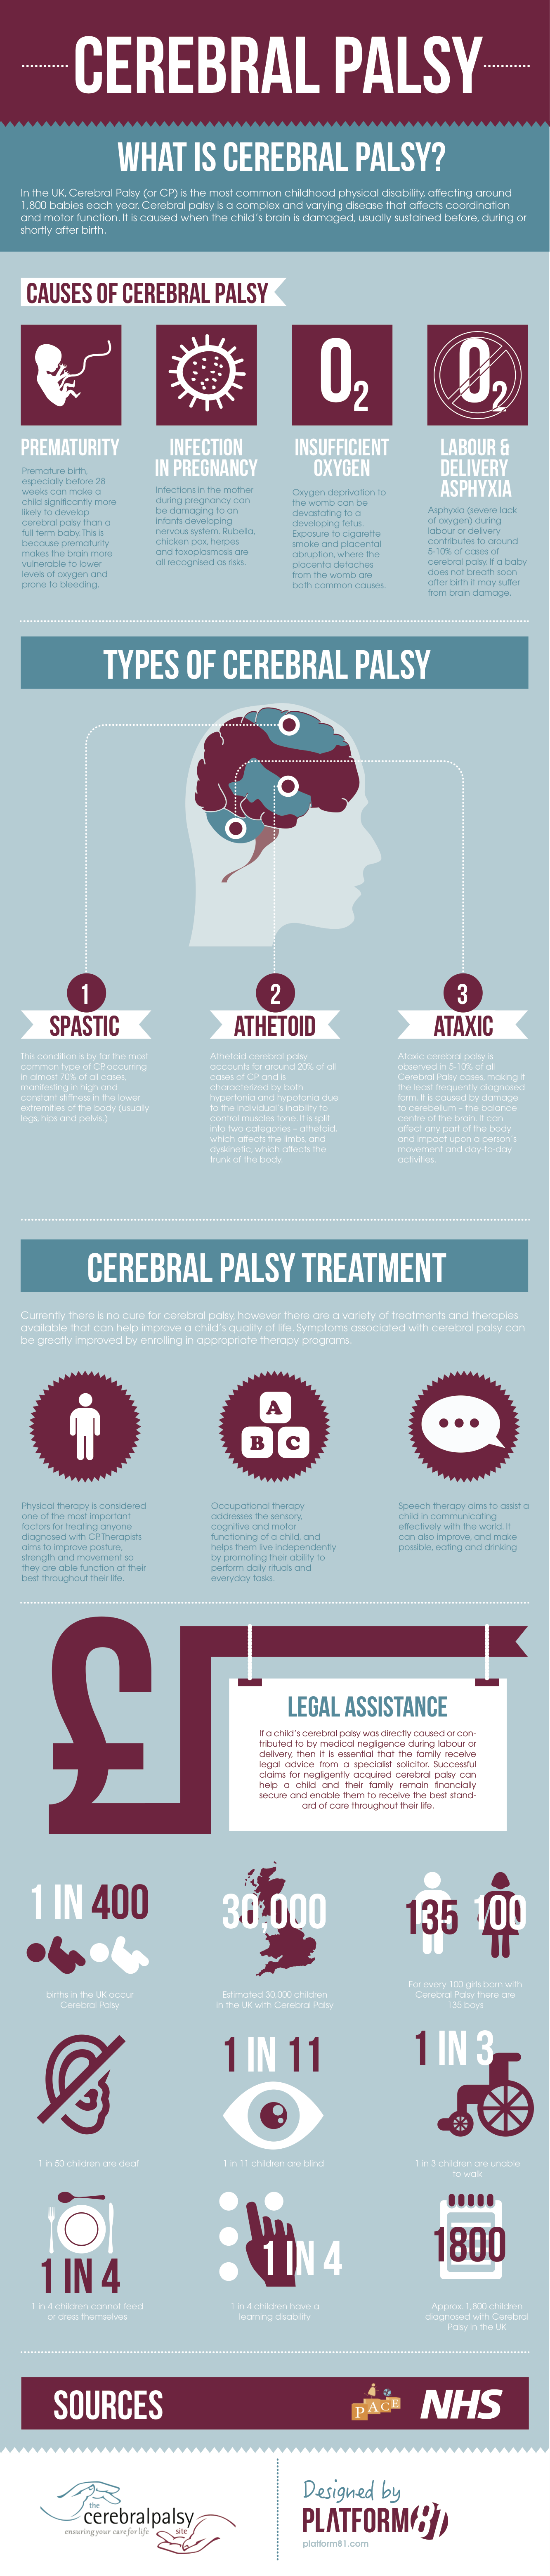 Cerebral Palsy - Facts & Figures